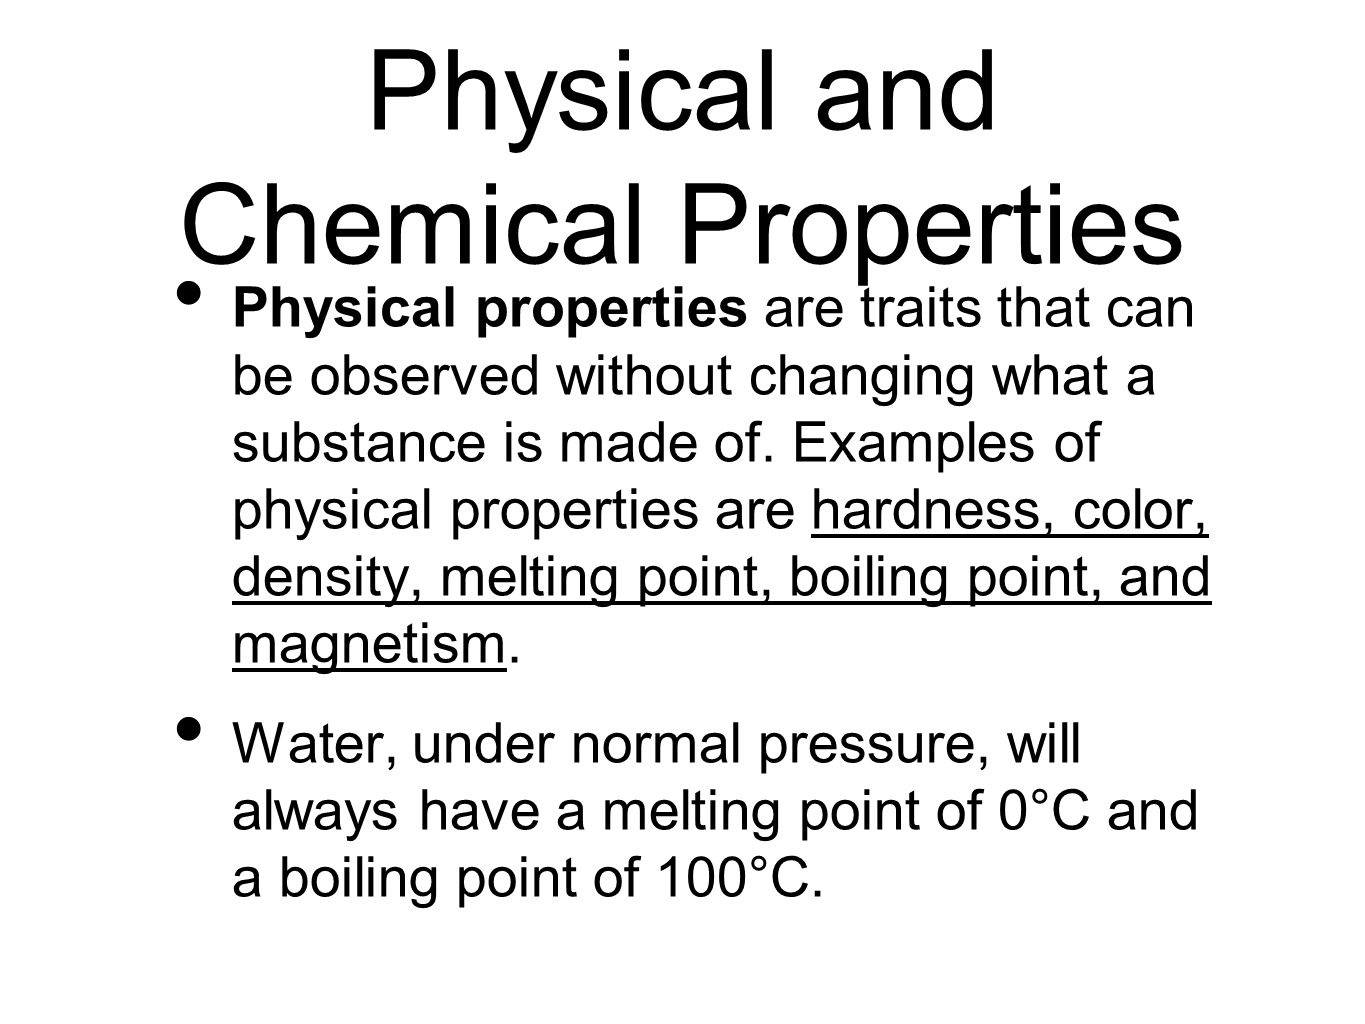 Physical and Chemical Properties Physical properties are traits that can be observed without changing what a substance is made of. Examples of physica